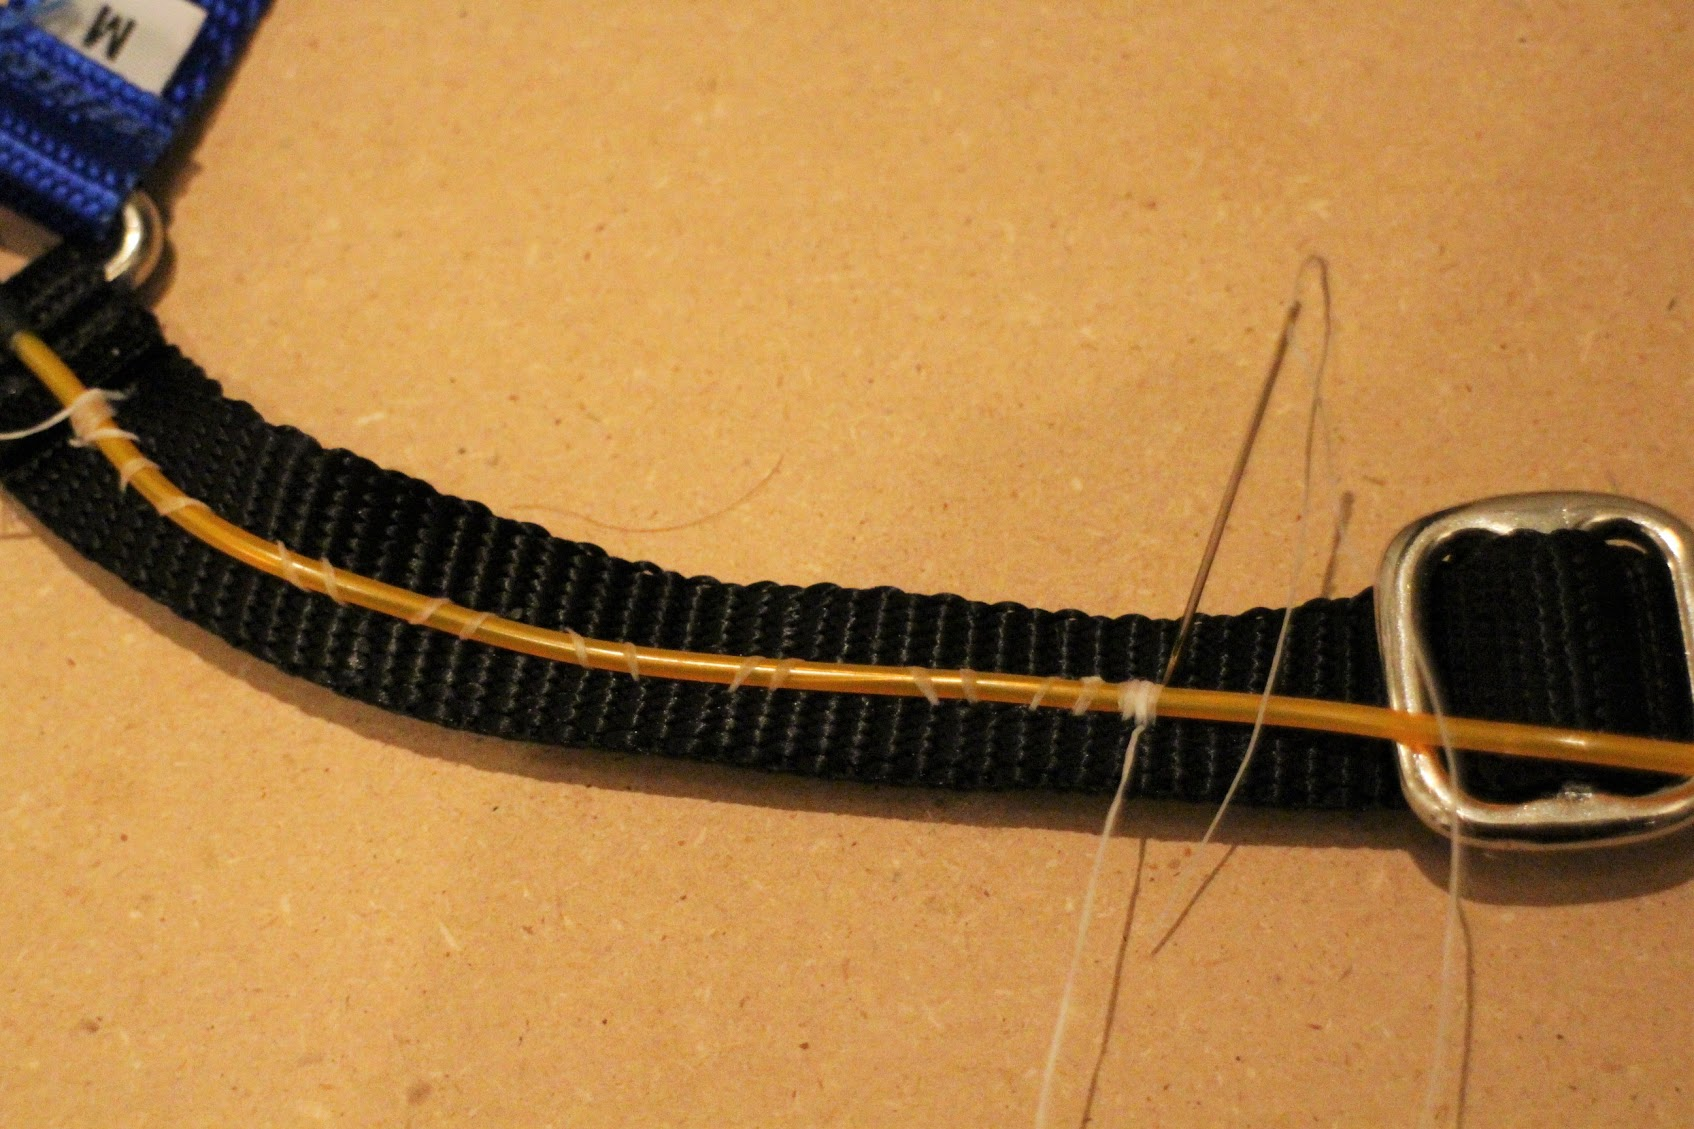 ELWire_Start el wire light up dog harness learn sparkfun com Wire Harness Assembly at n-0.co